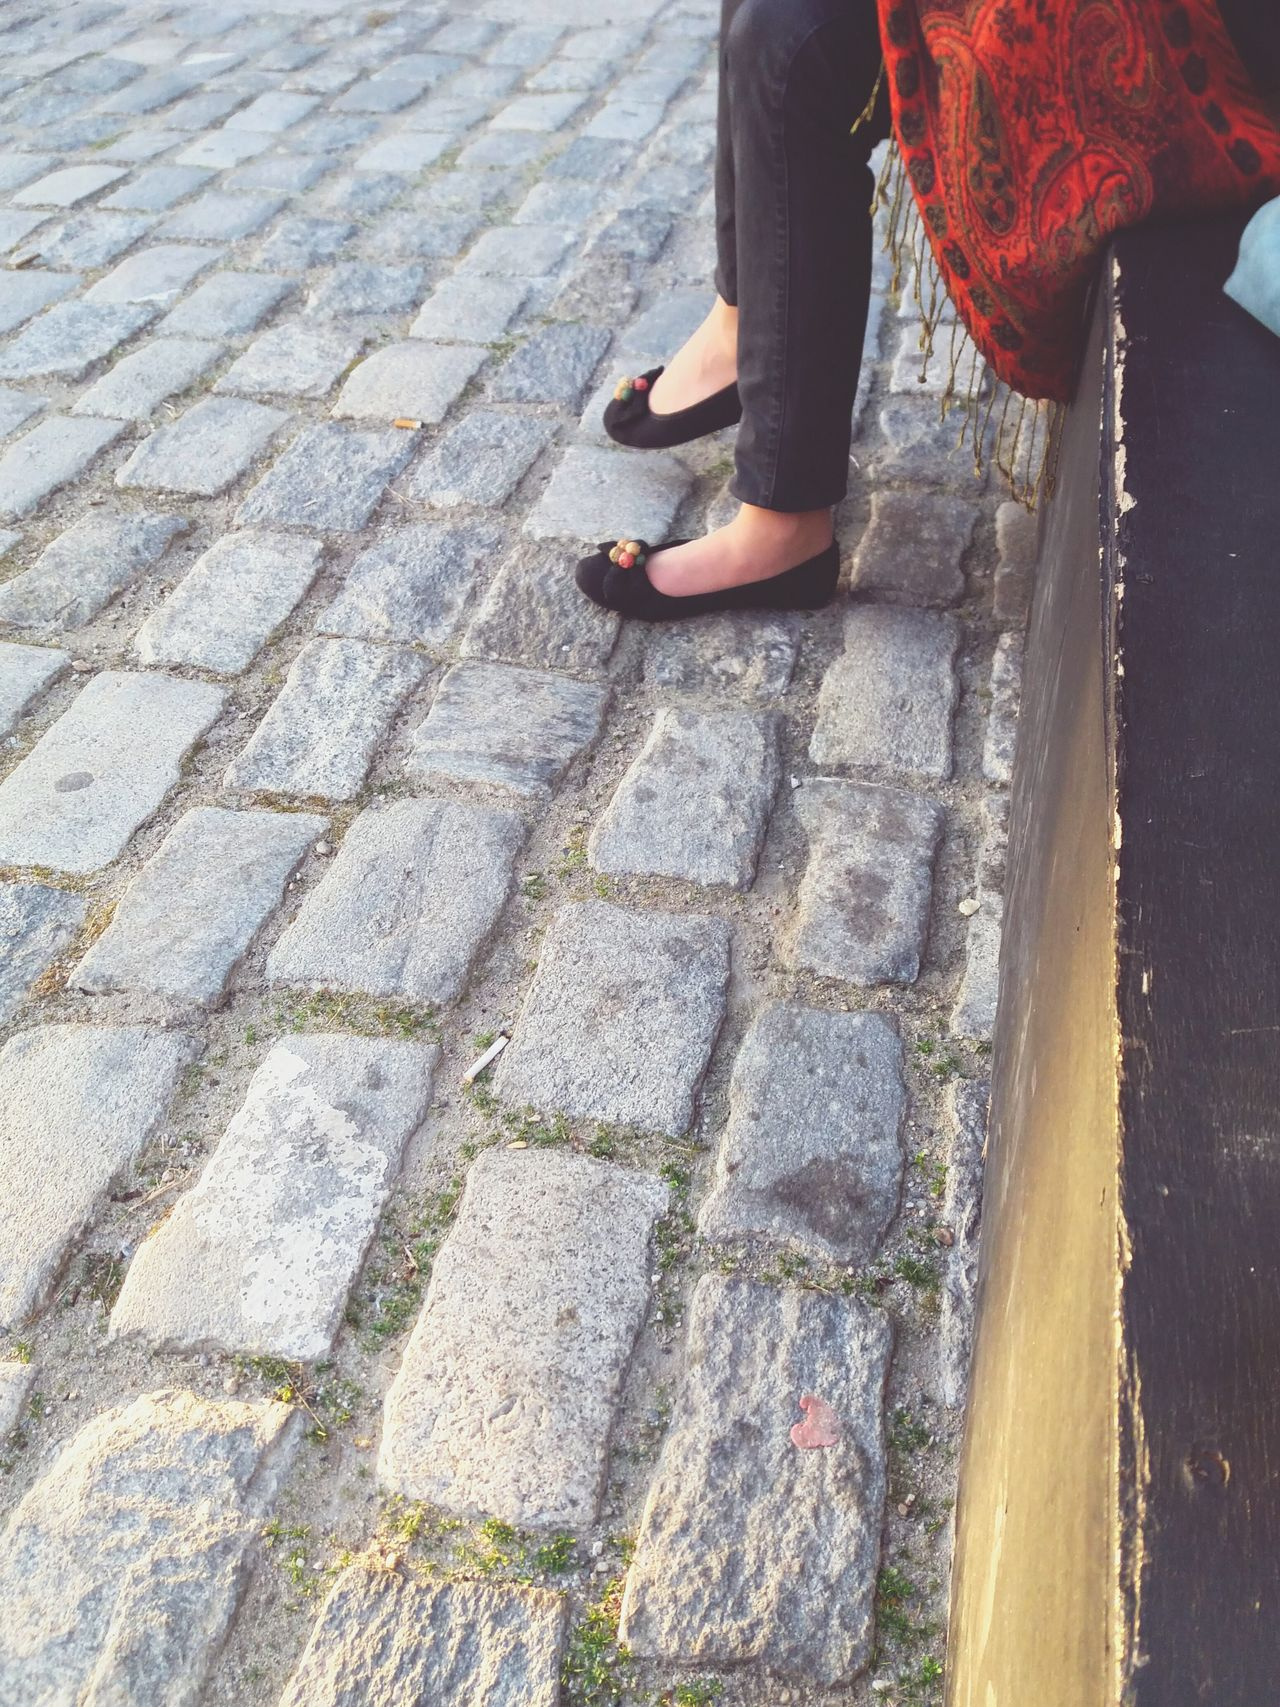 Still for a while -- DayshotsFromwhereistand Folk Culture Ballerinas Getting Away From It All Kinfolk Paisley Pattern Green Grass Snapshots Of Life Skg Autumn Colors Tiff56 Filmfestival Waiting ... Streetphoto_color Street Style Folk Fall2015 NOMAD TheSidewalksOfTheCity Thessaloniki Greece Vintage Style Street Portrait Anytone